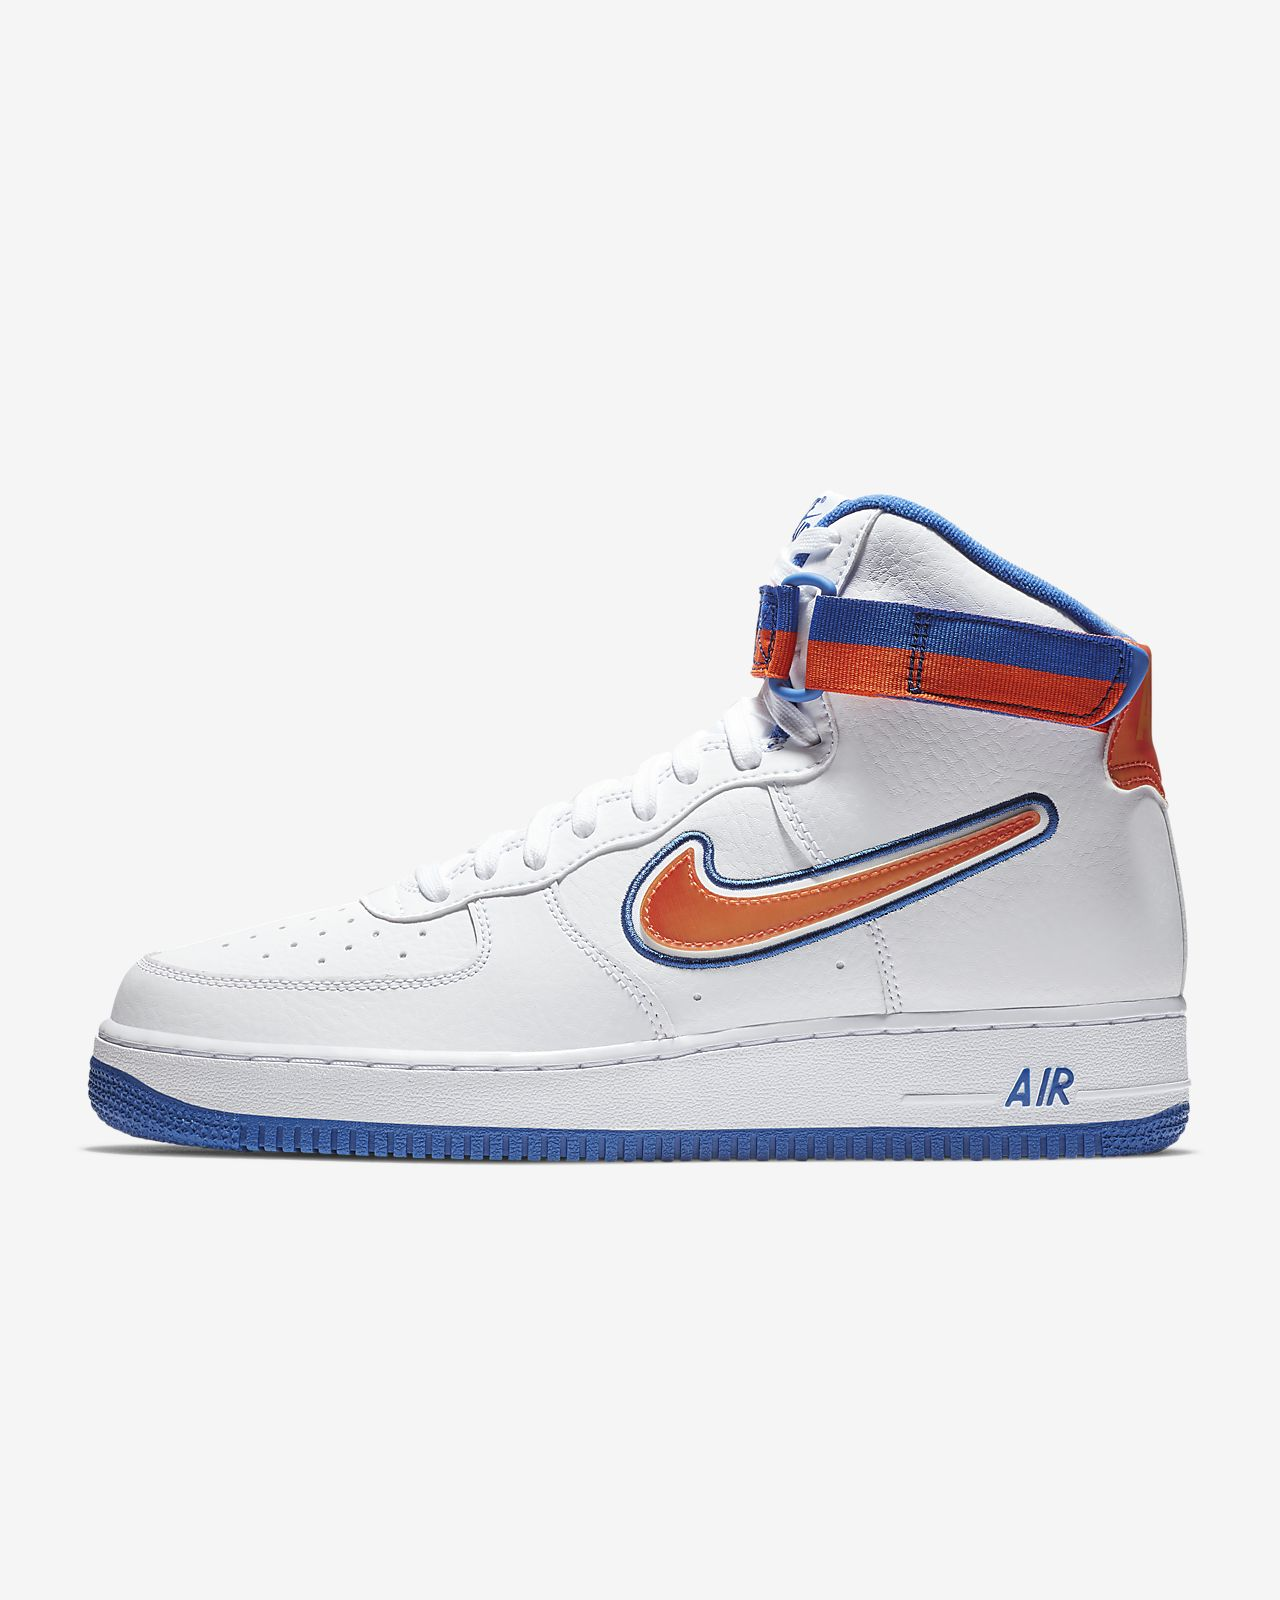 official photos 6ca6e 2c28c ... Nike Air Force 1 NBA High (New York Knicks) Men s Shoe